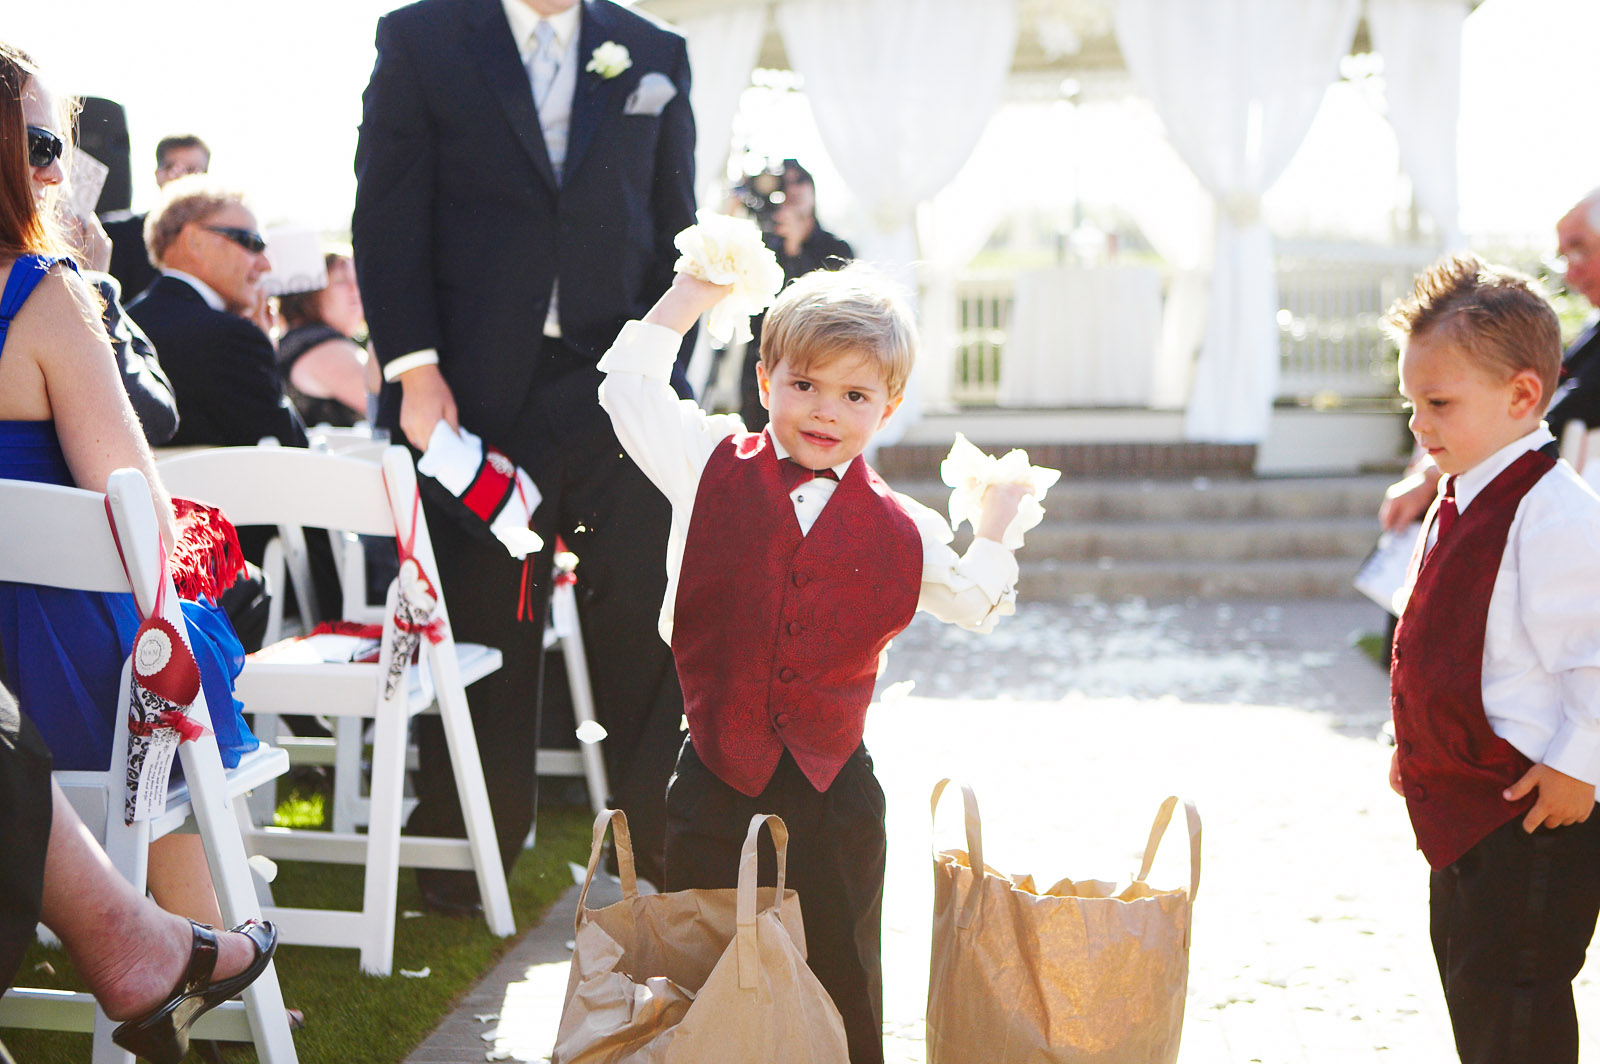 Ring Bearer Tuxedos For Wedding 64 Great A ring bearer helps